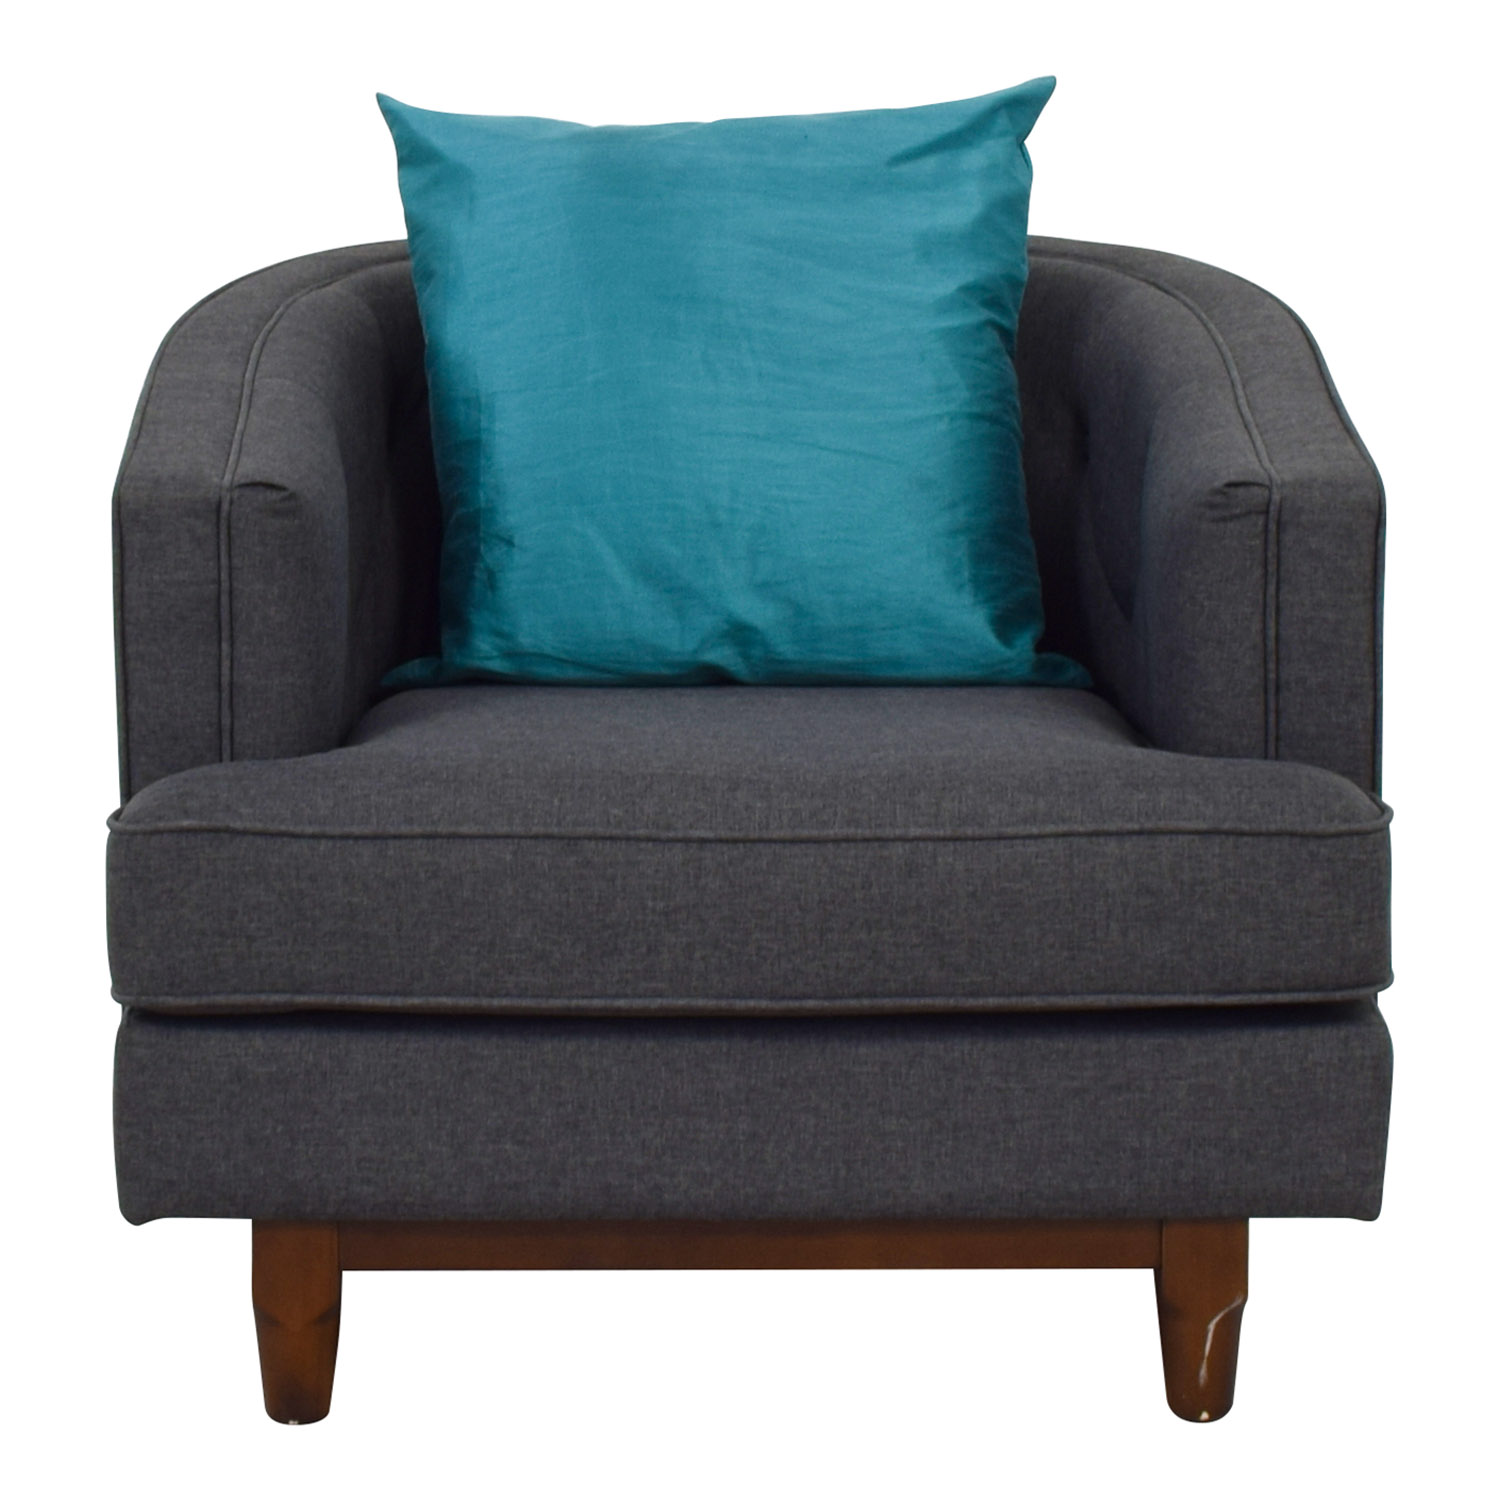 buy Modway Modway Grey Upholstered Club Chair online